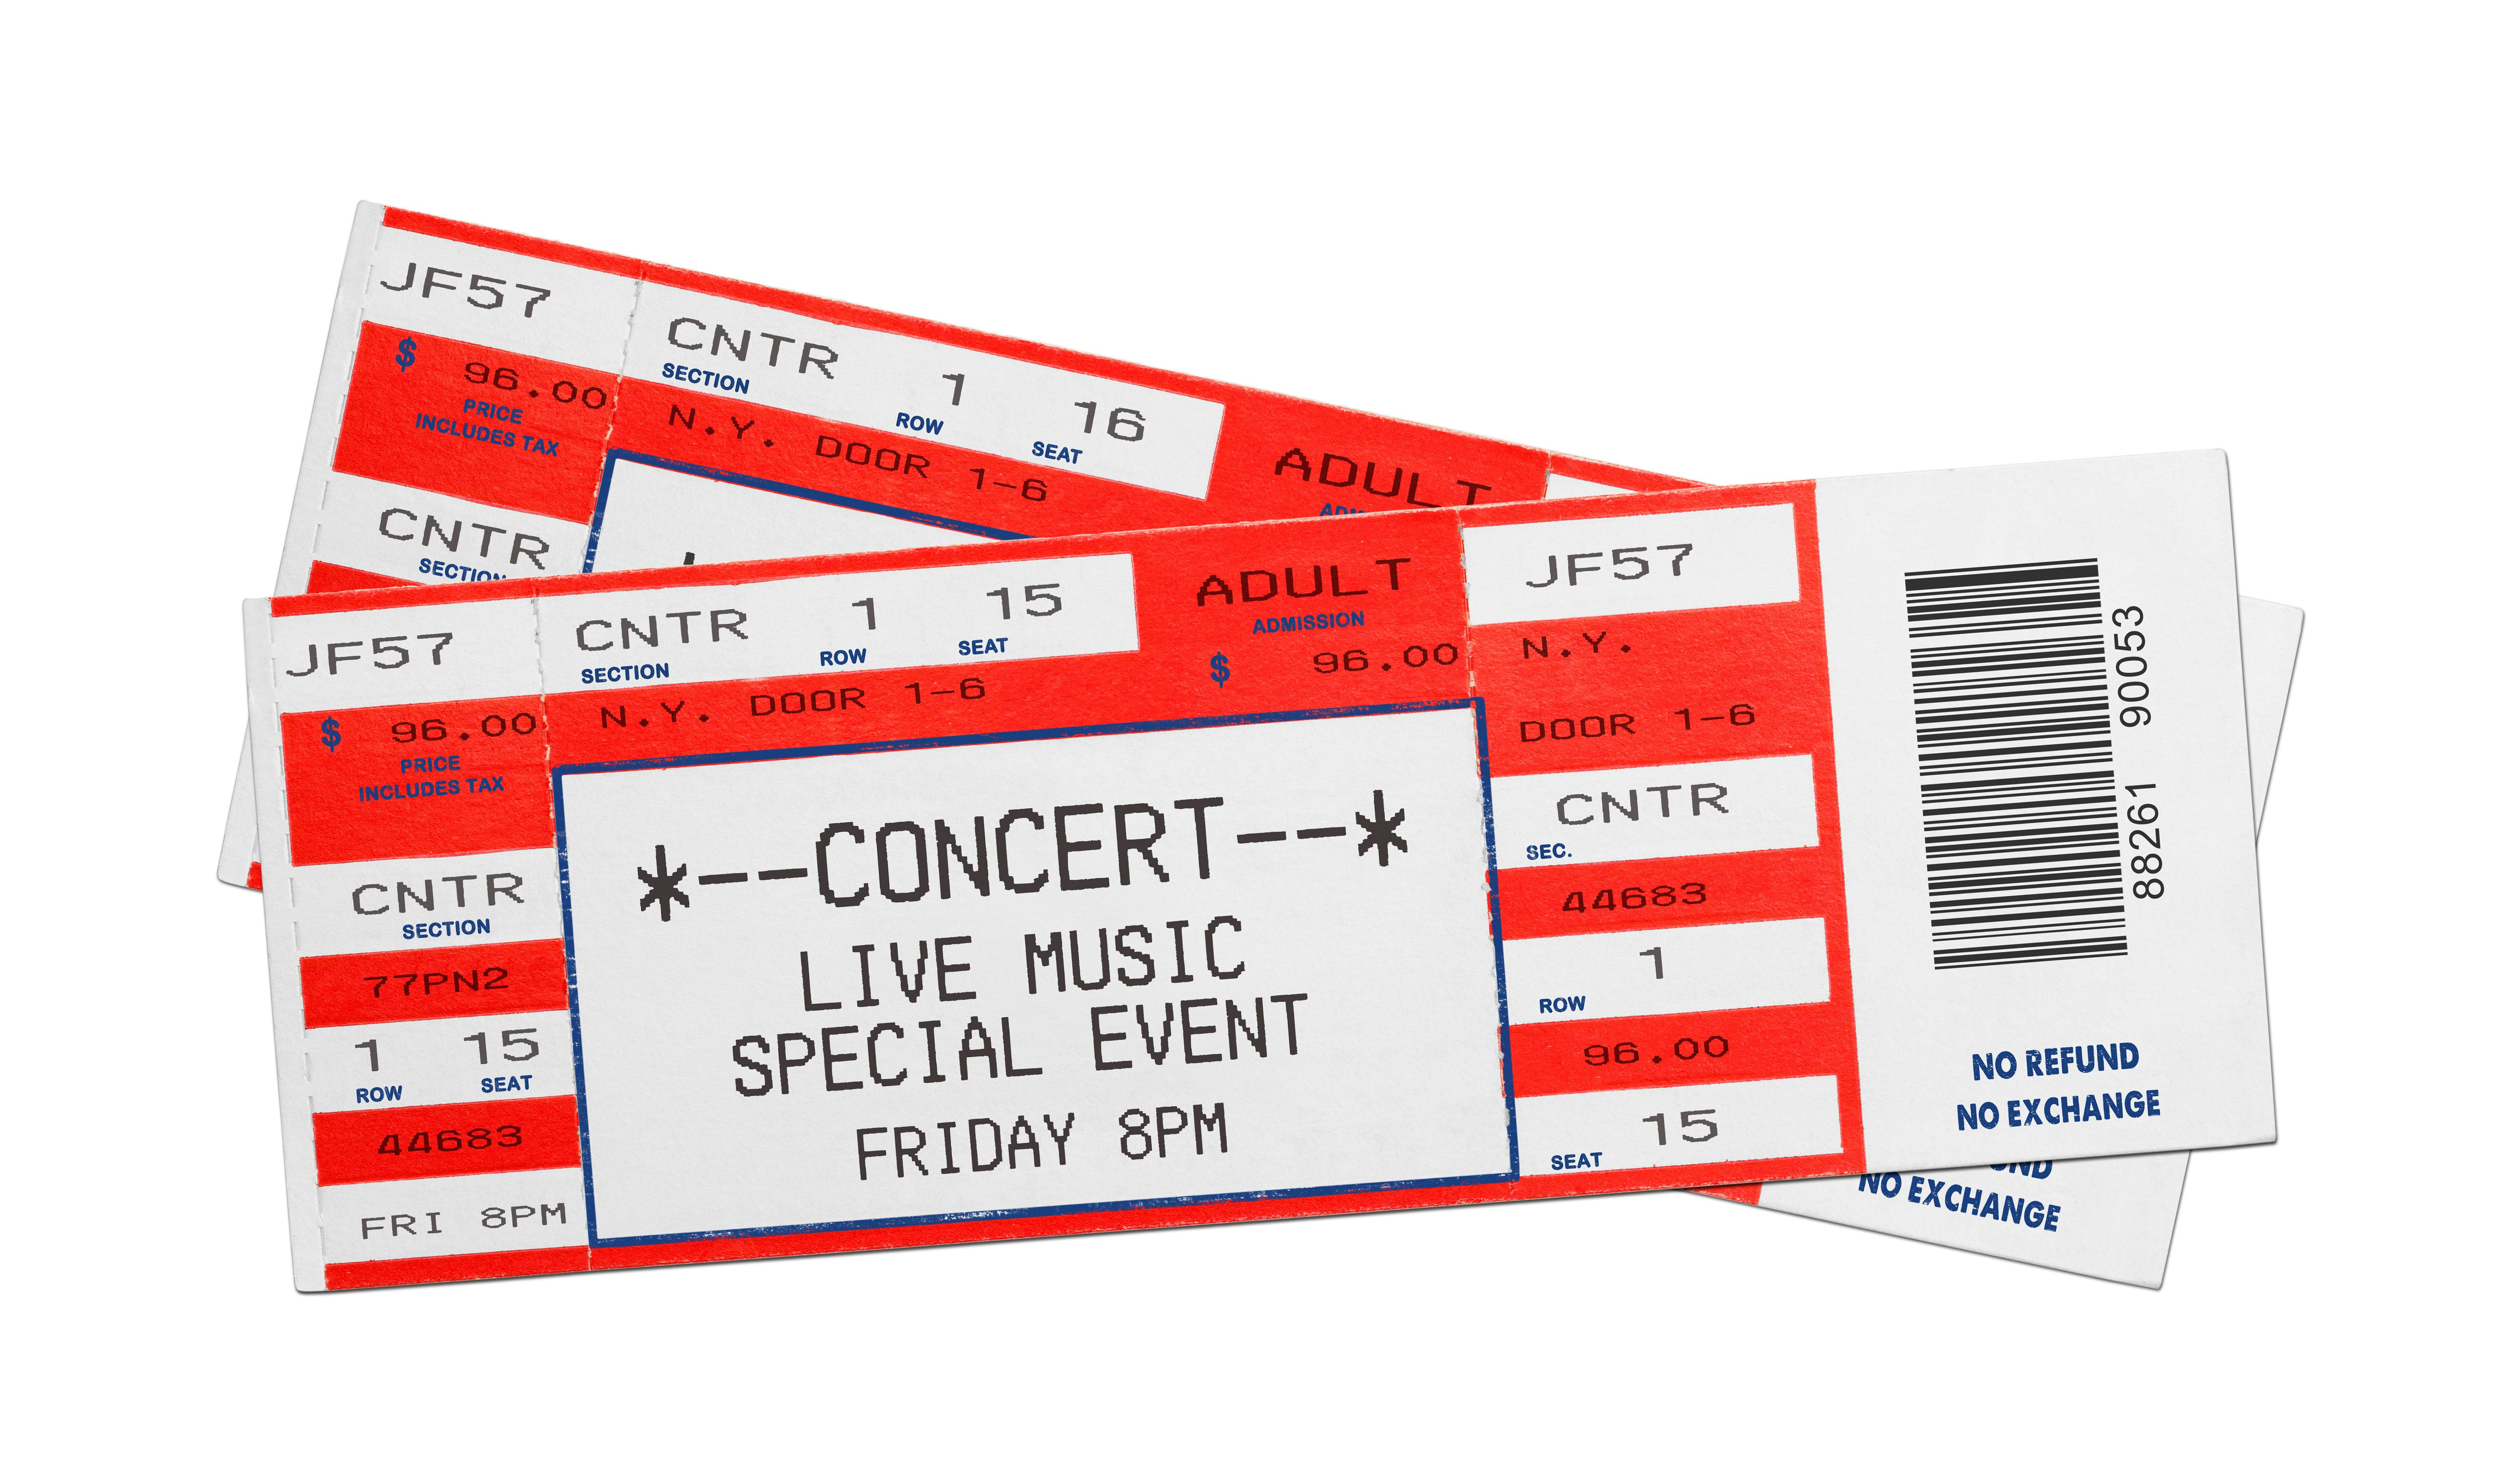 FIGHTING THE TOUTS: Ticketmaster To Close Resale Sites Get Me In And